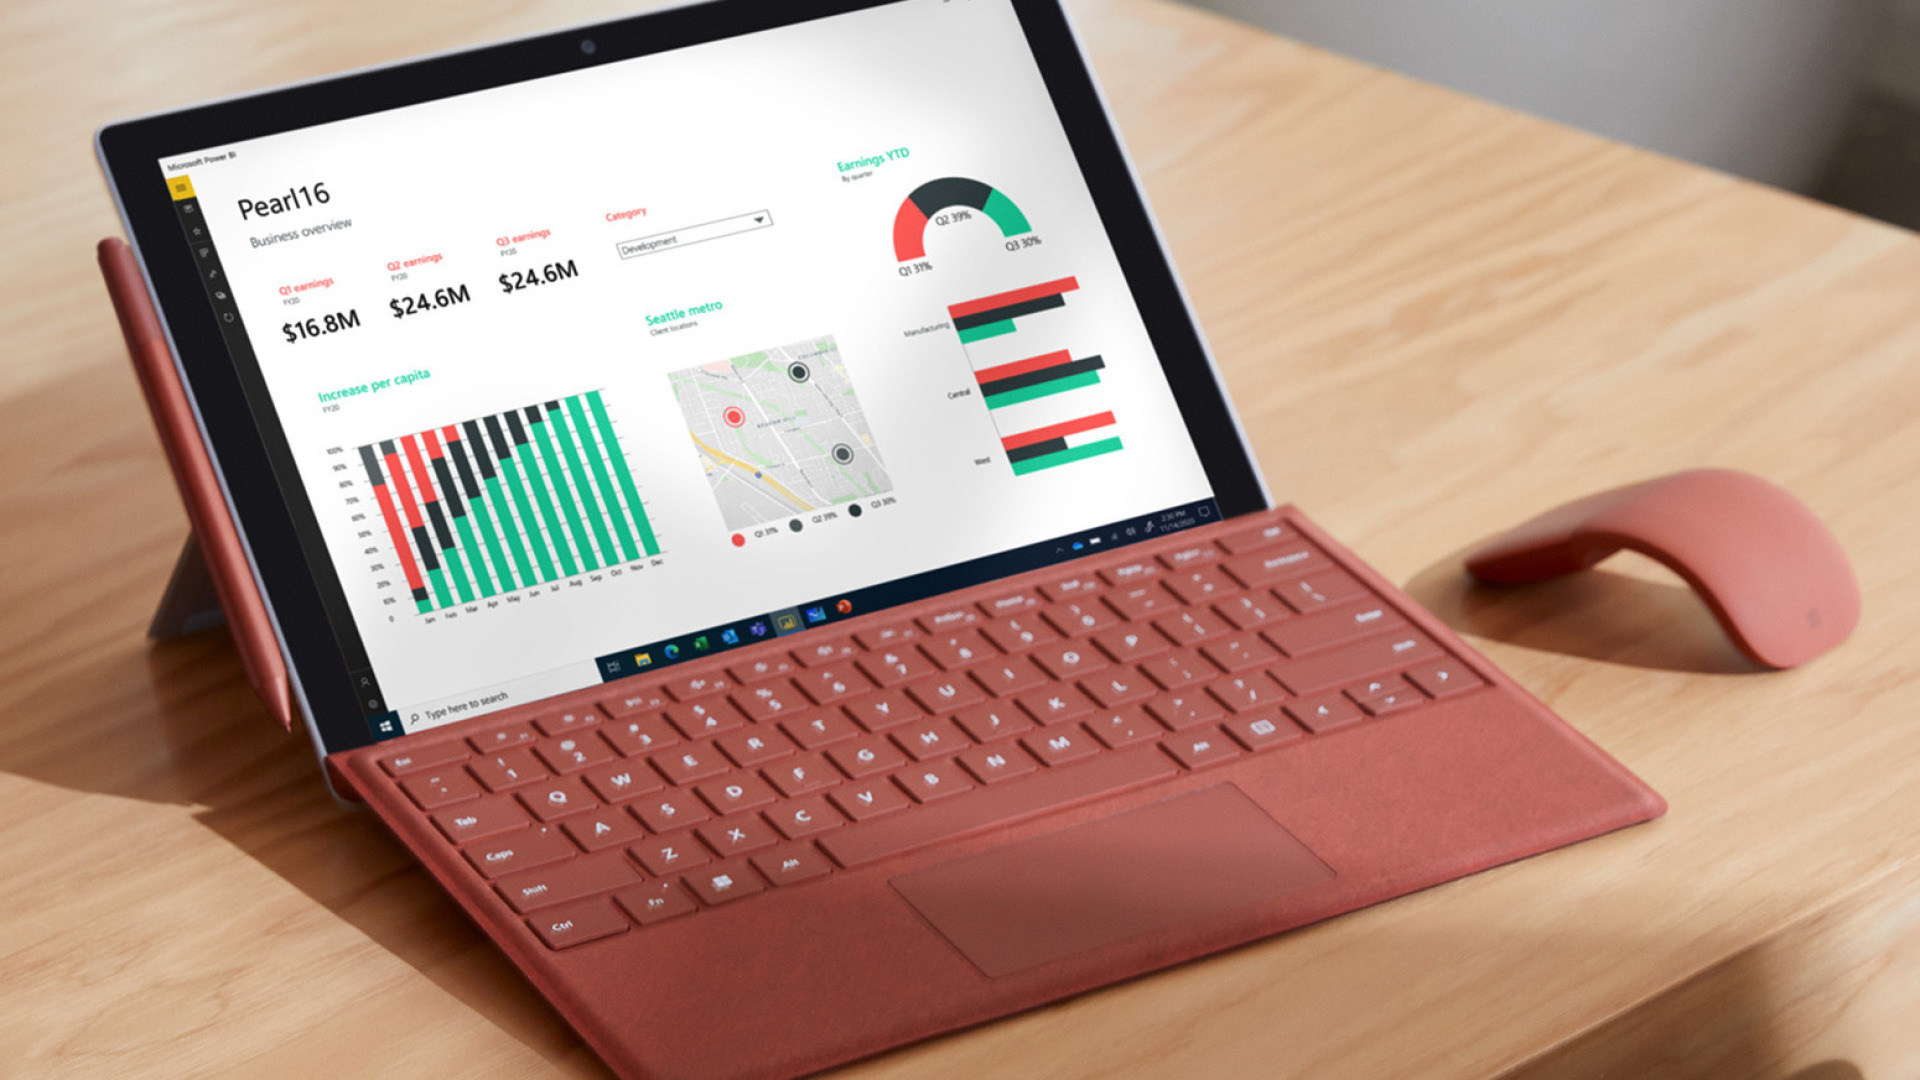 Microsoft, Tablet, Surface, Microsoft Surface, Akku, Ssd, 2-in-1, Surface Pro, Tiger Lake, austauschbar, Microsoft Surface Pro 7 Plus, Microsoft Surface Pro 7+